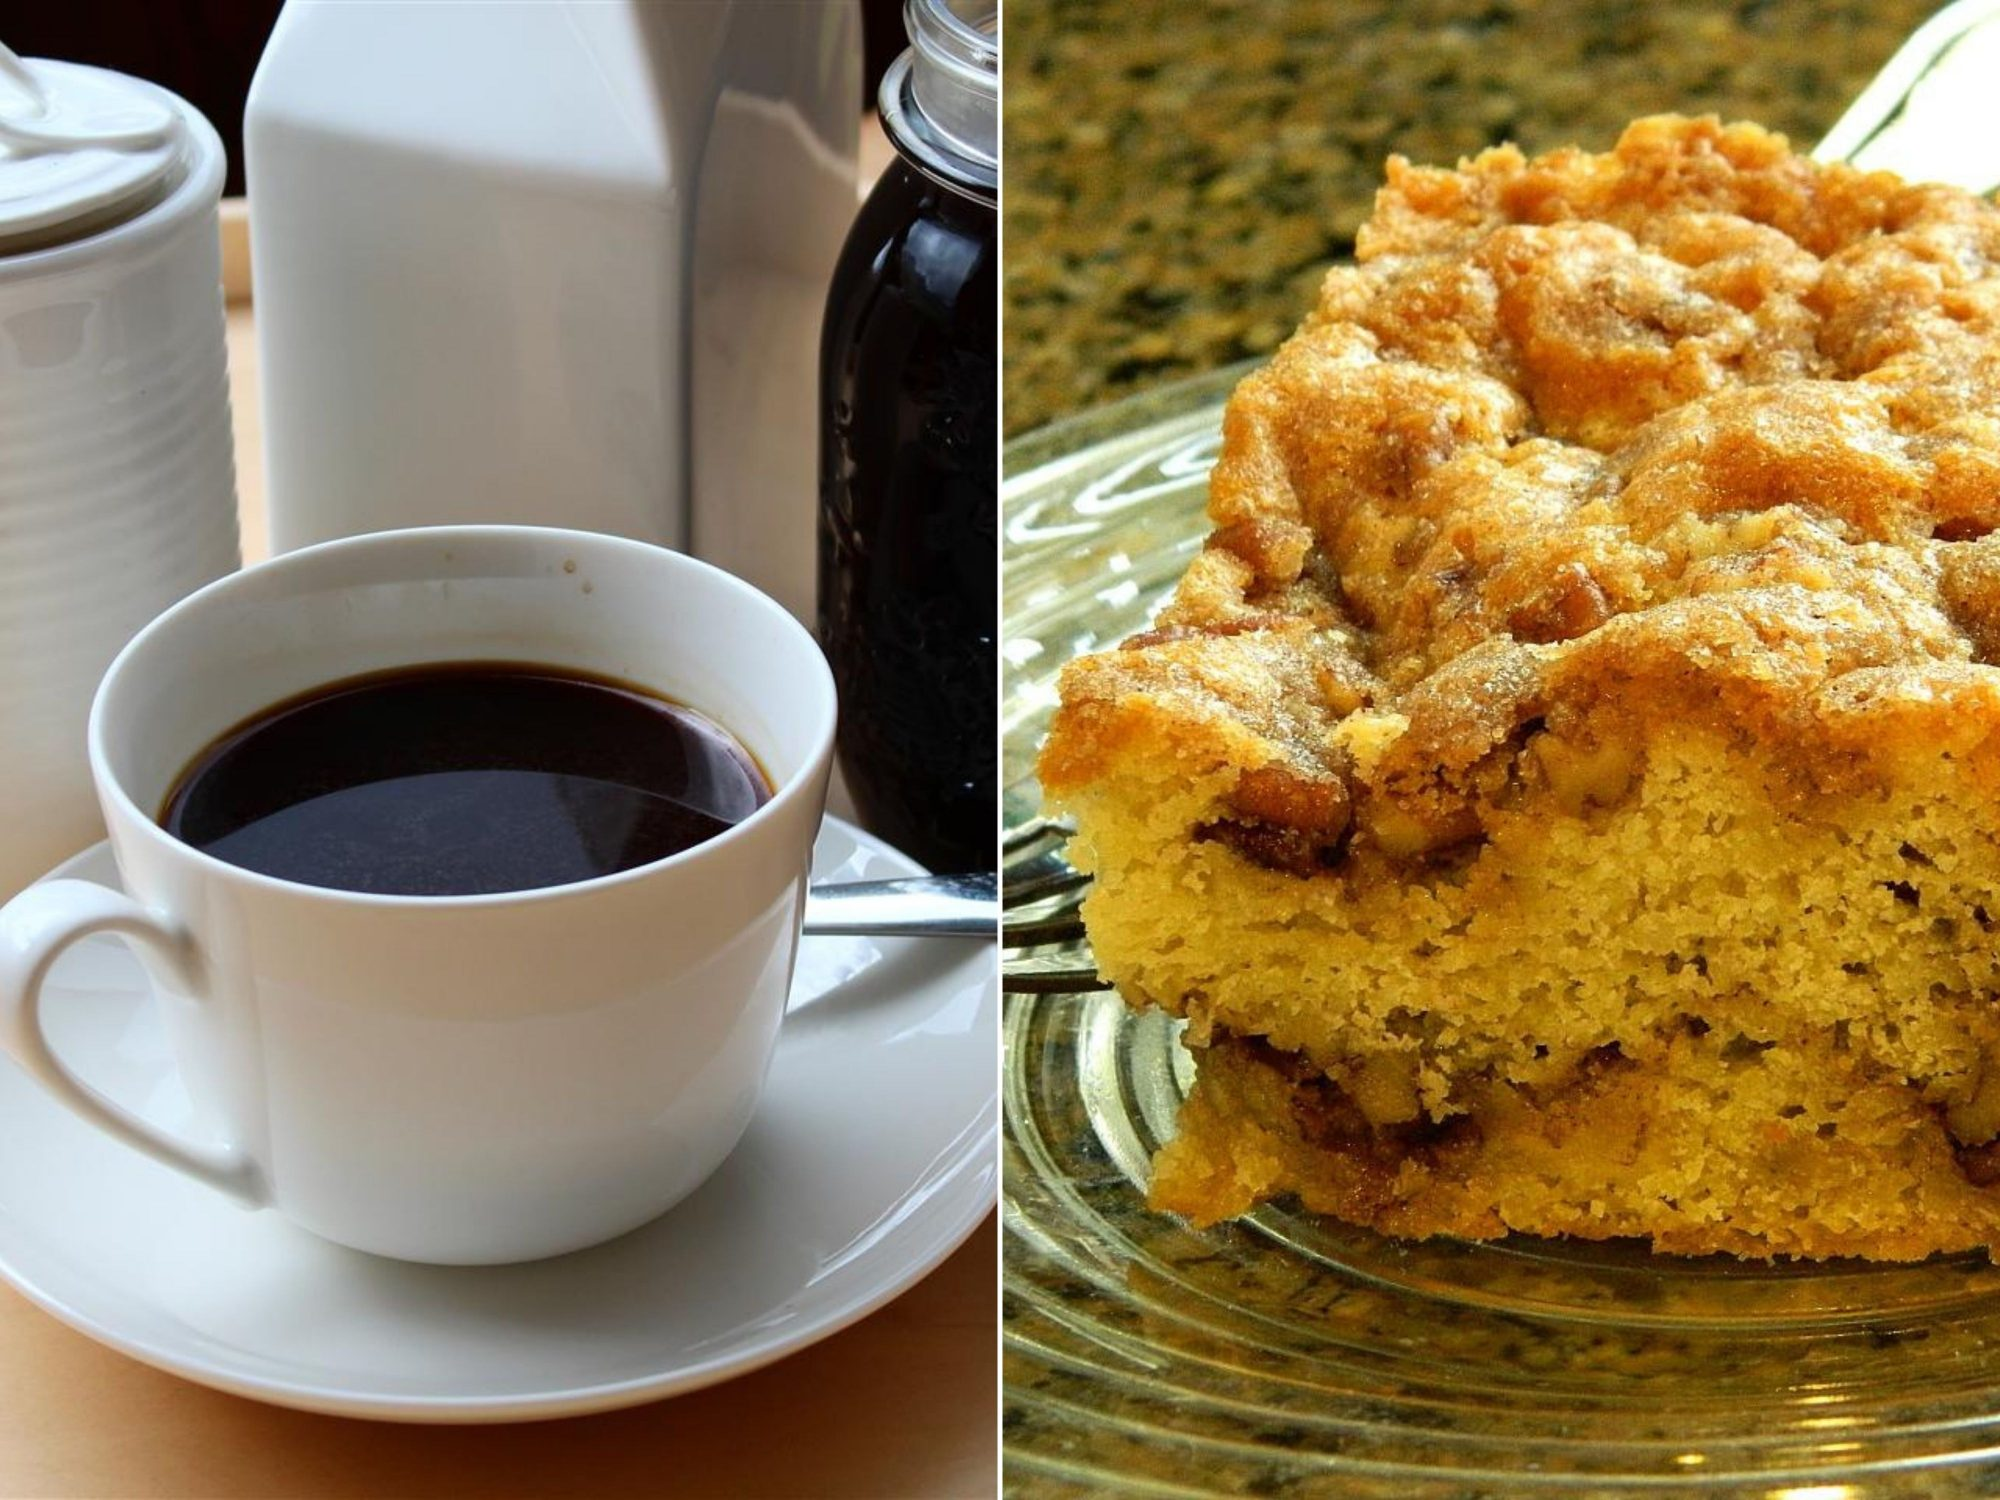 an image pairing a cup of black coffee and pecan cake